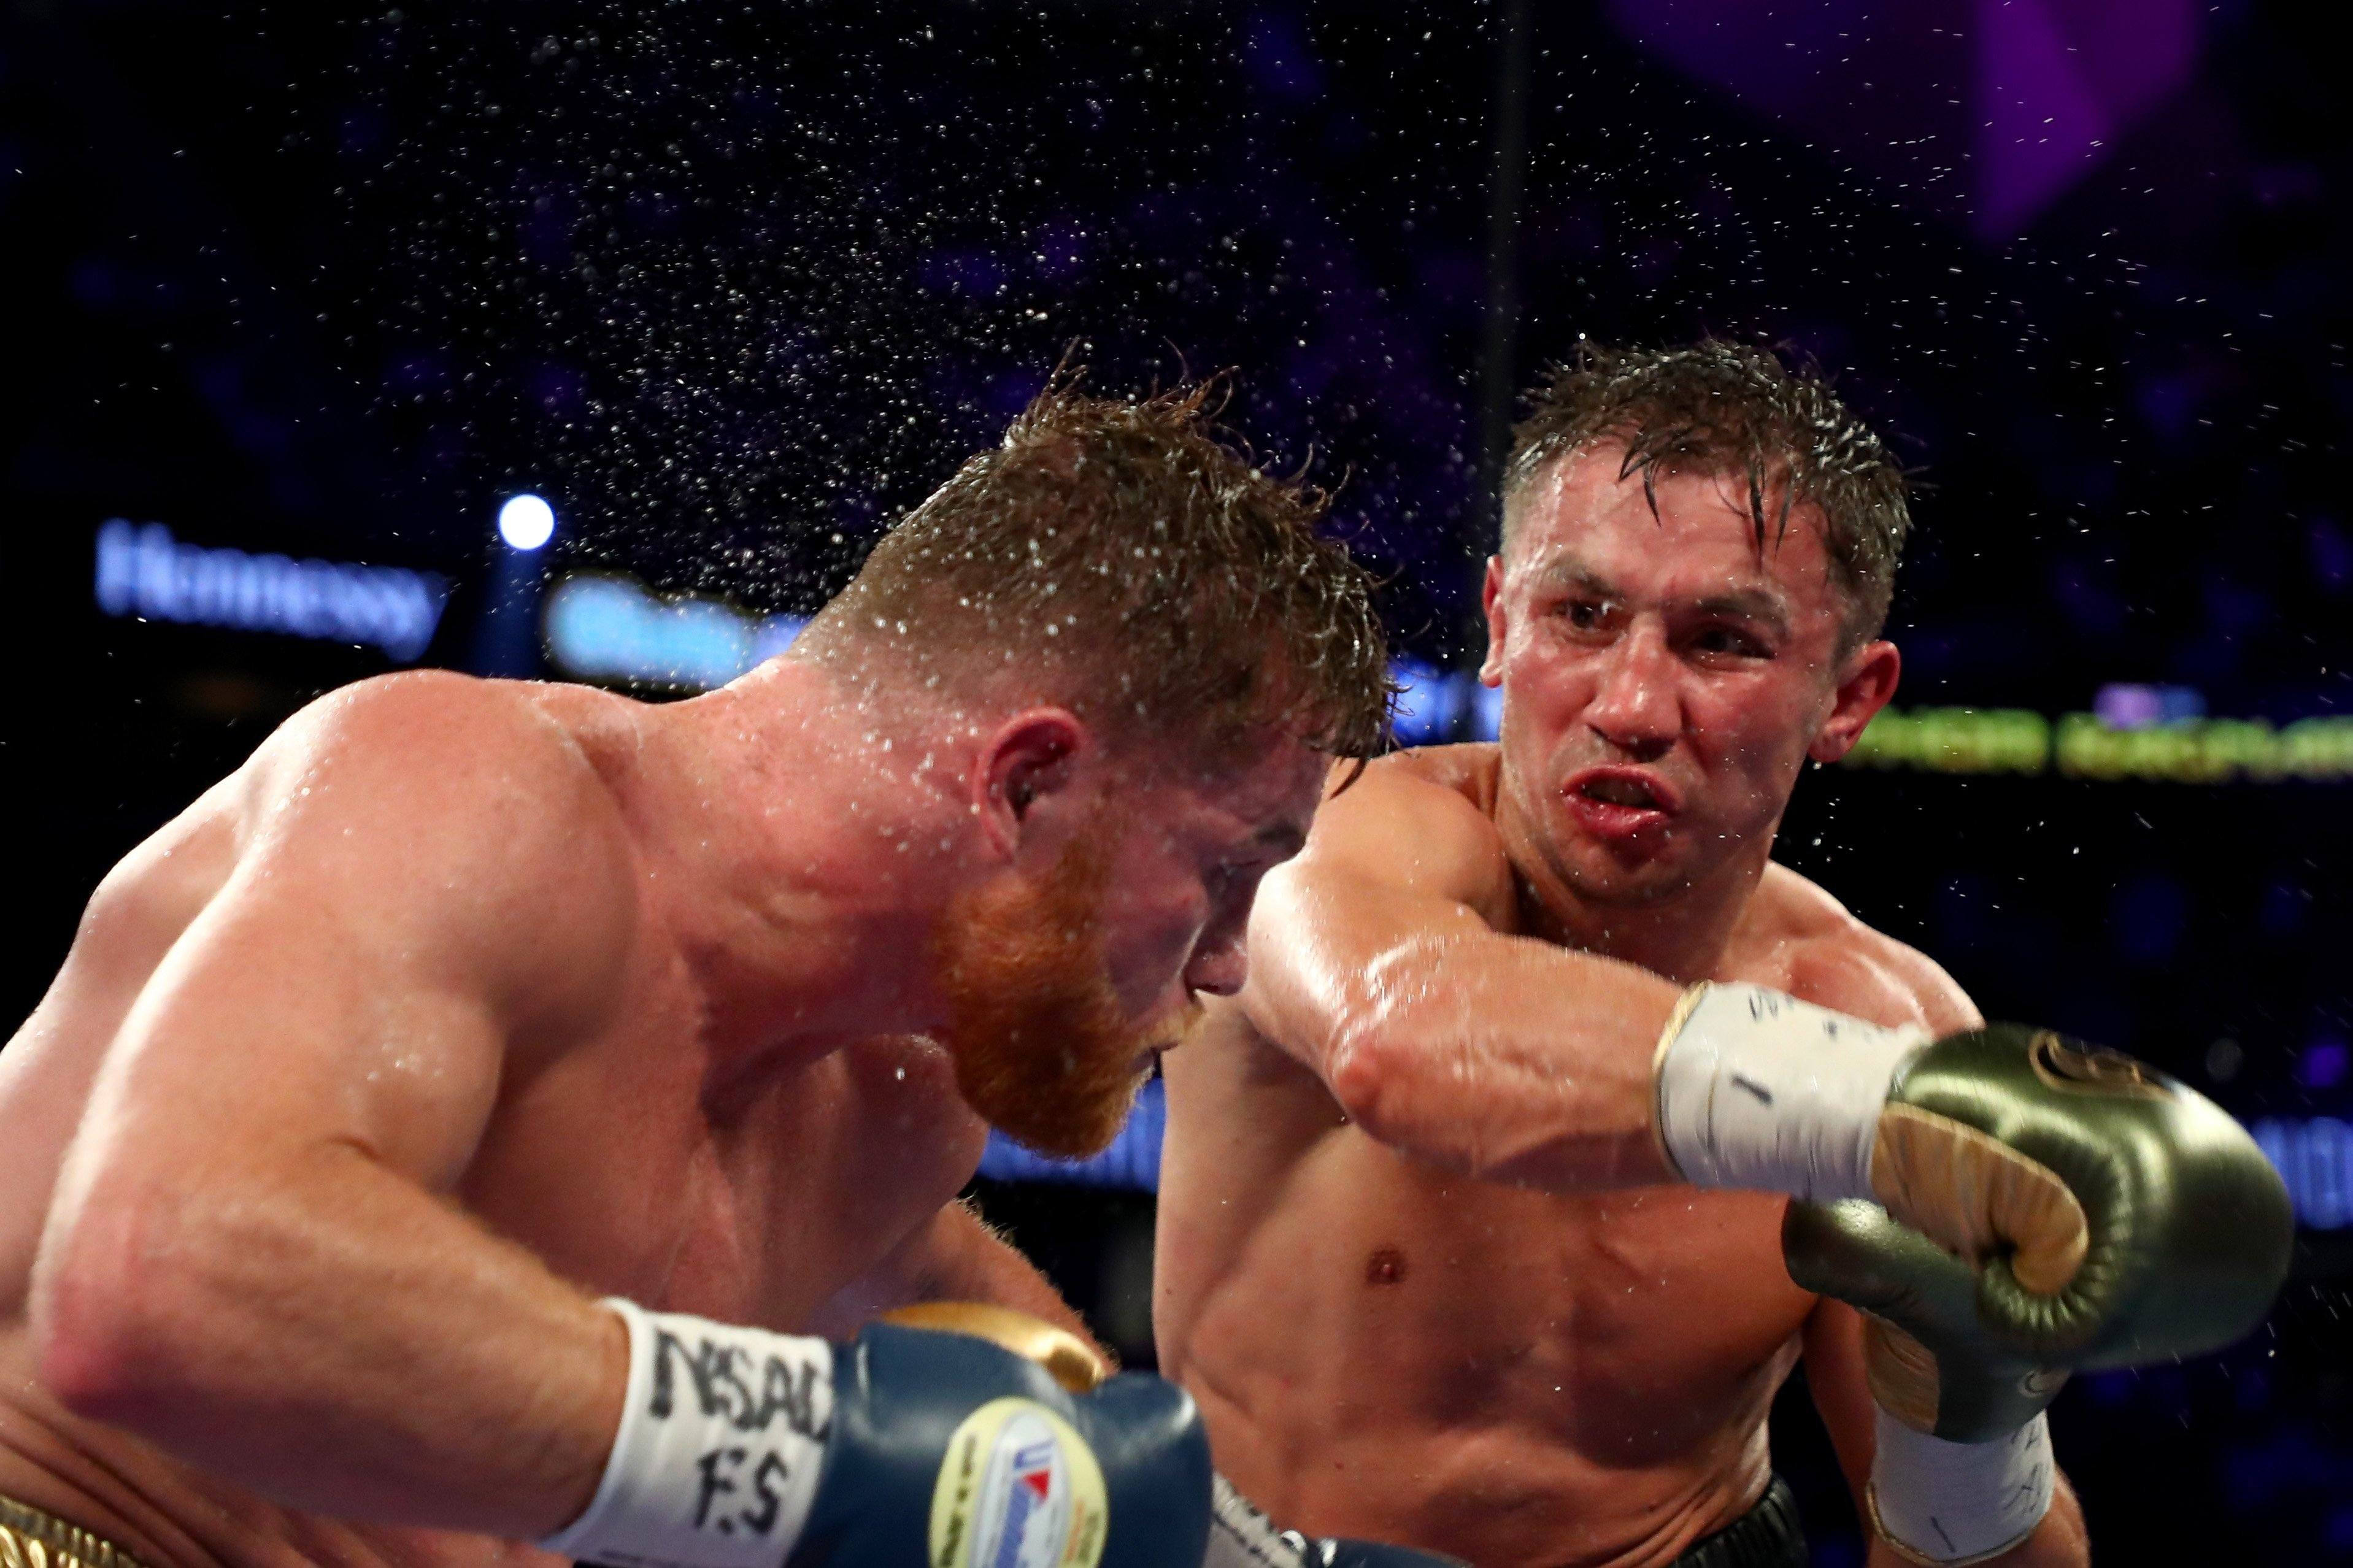 Gennady Golovkin, Canelo Alvarez Rematch Appears to be Set